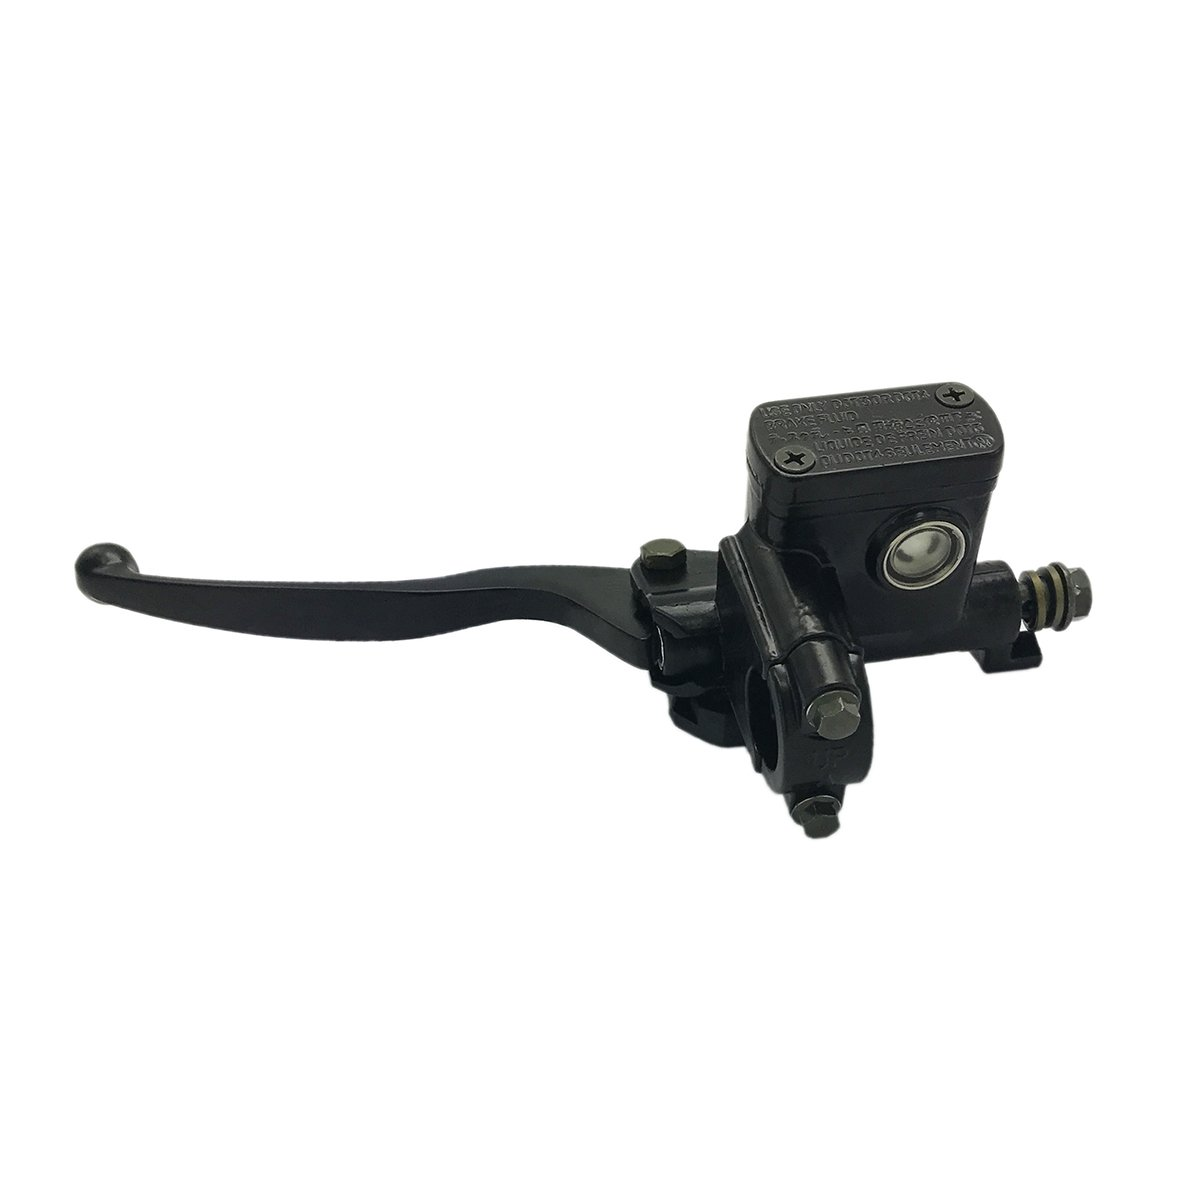 JA-ALL ATV Handlebar Brake Master Cylinder with Lever Left Side for 50cc - 125cc